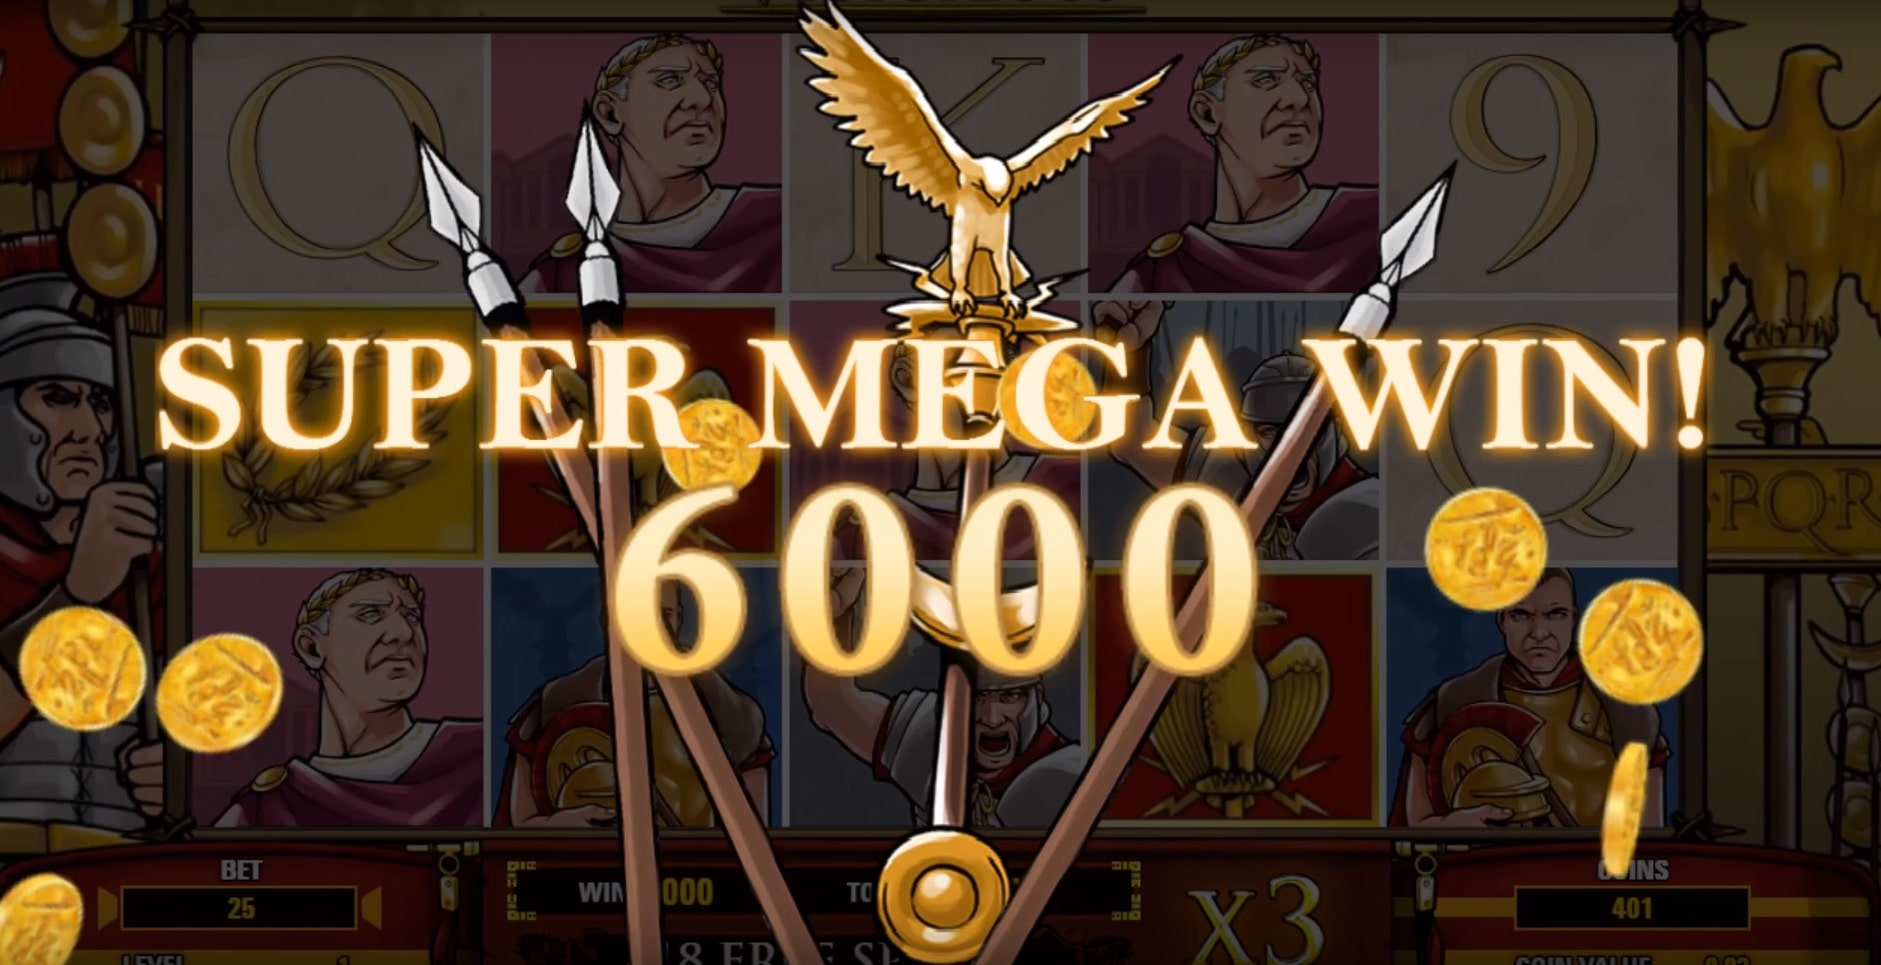 Roman spears behind the Super Mega Win in the Victorious Max slot.